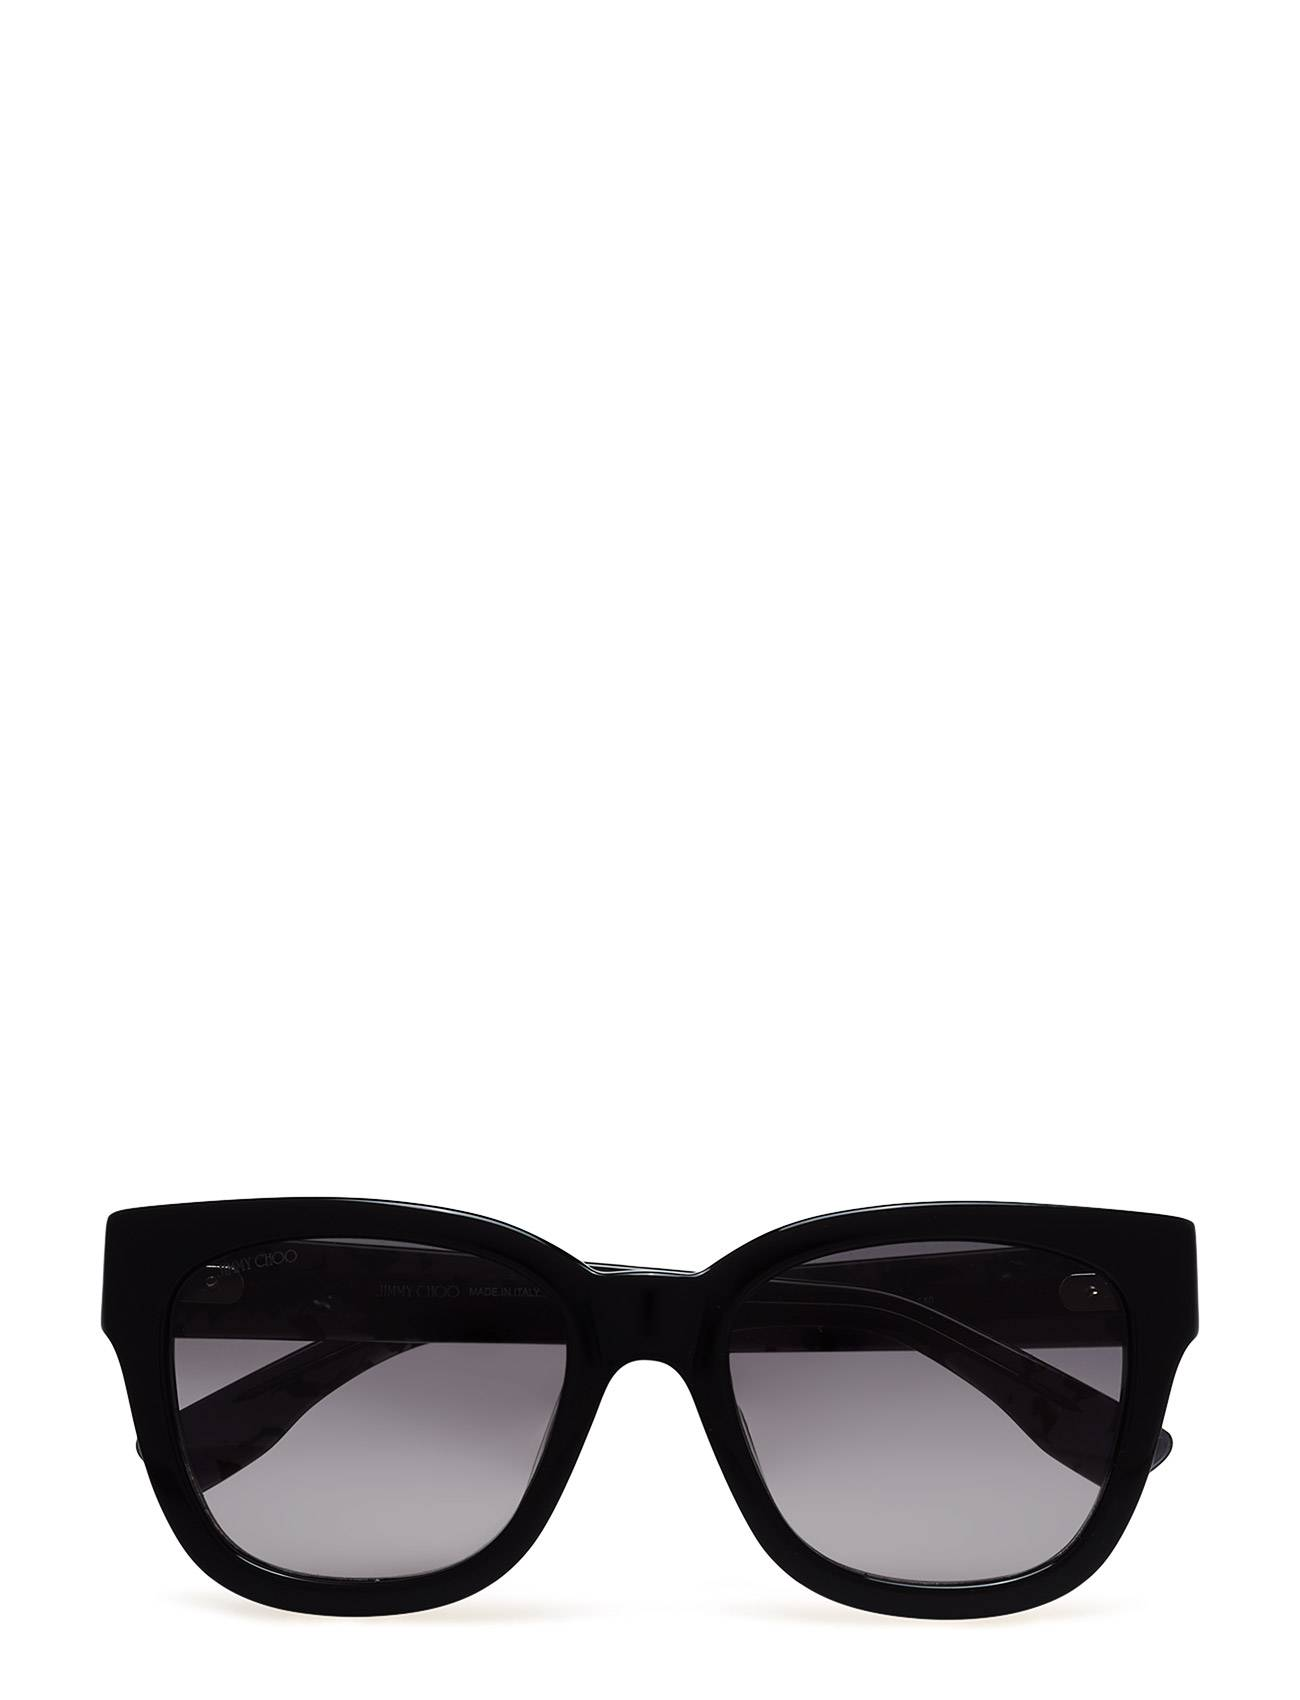 Jimmy Choo Sunglasses Otti/S